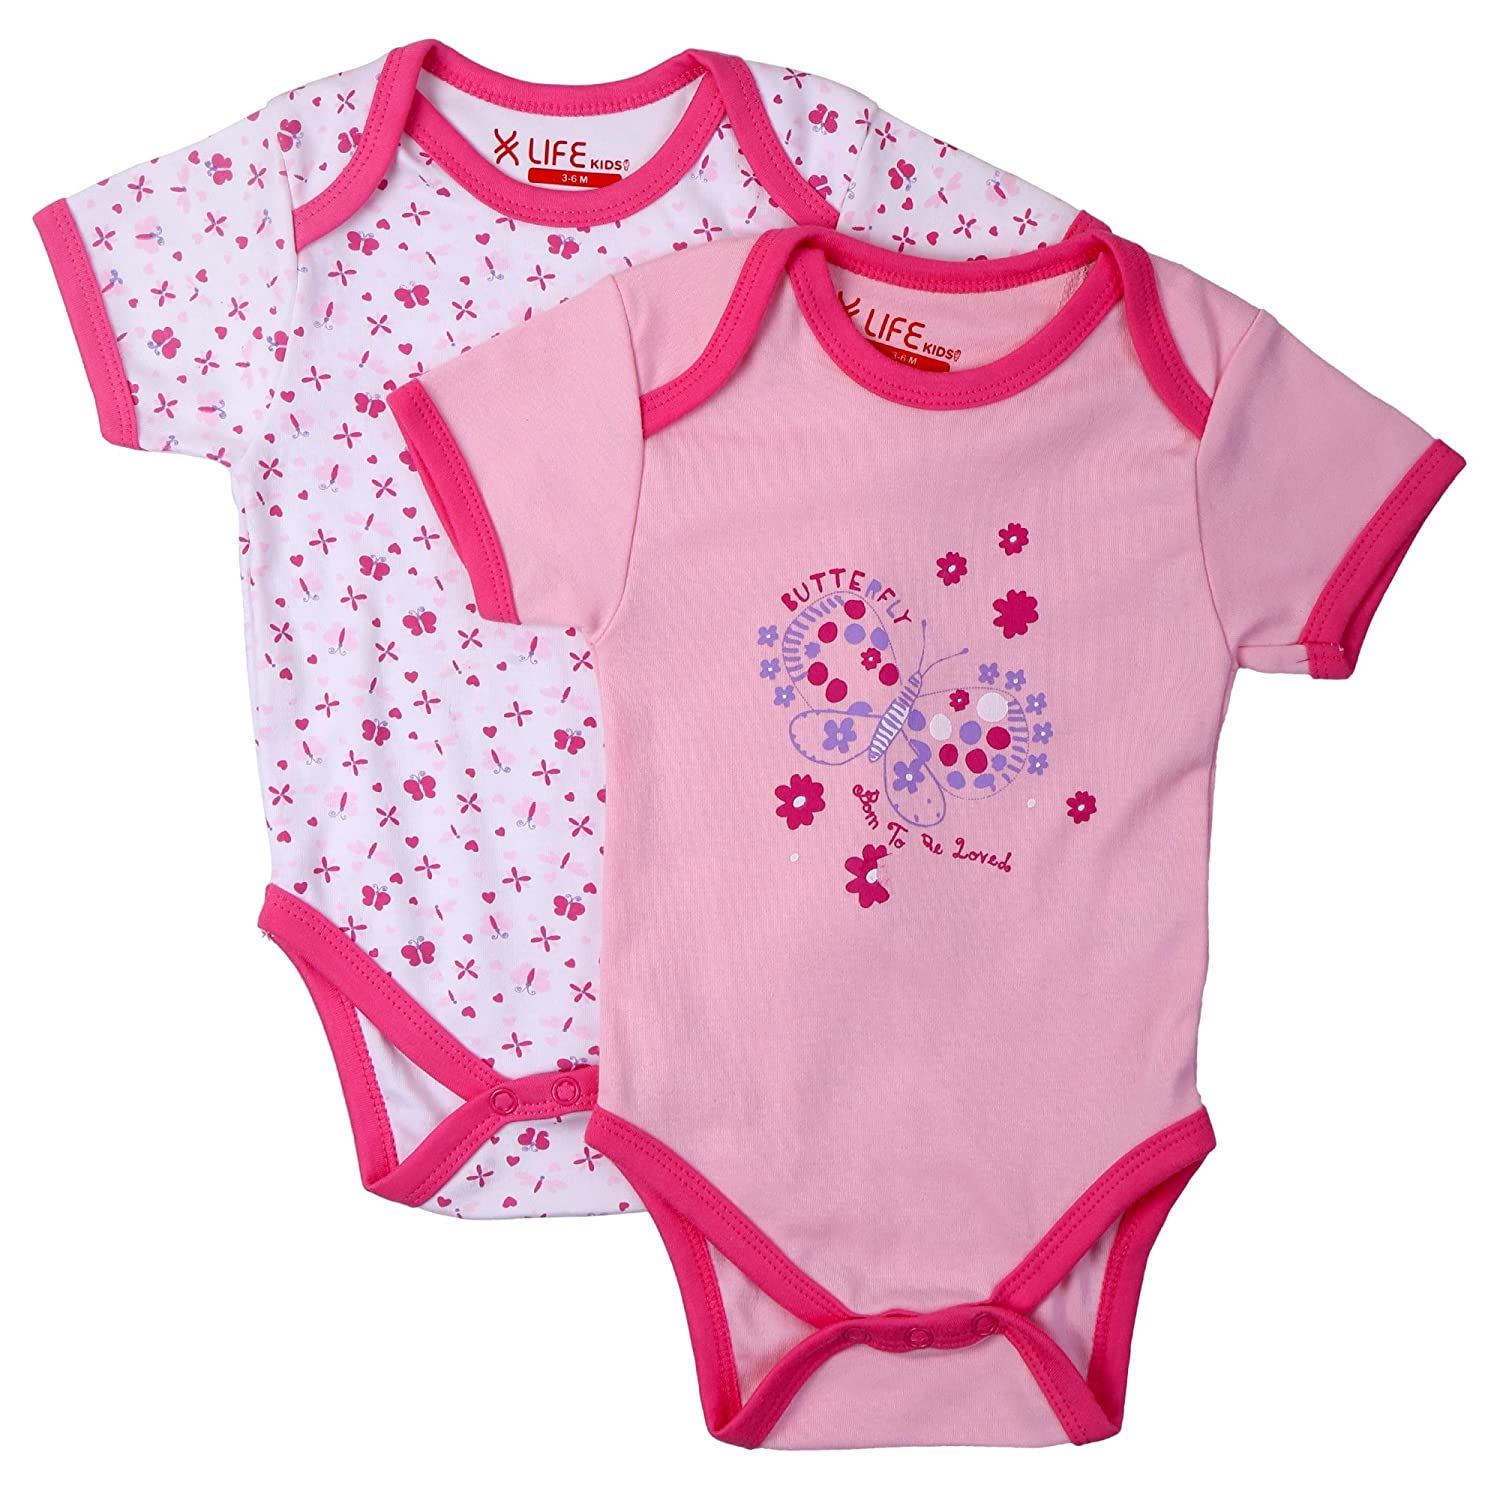 6f1699750 NeedyBee Pink   White 100% Organic Cotton Designer Onesie for ...